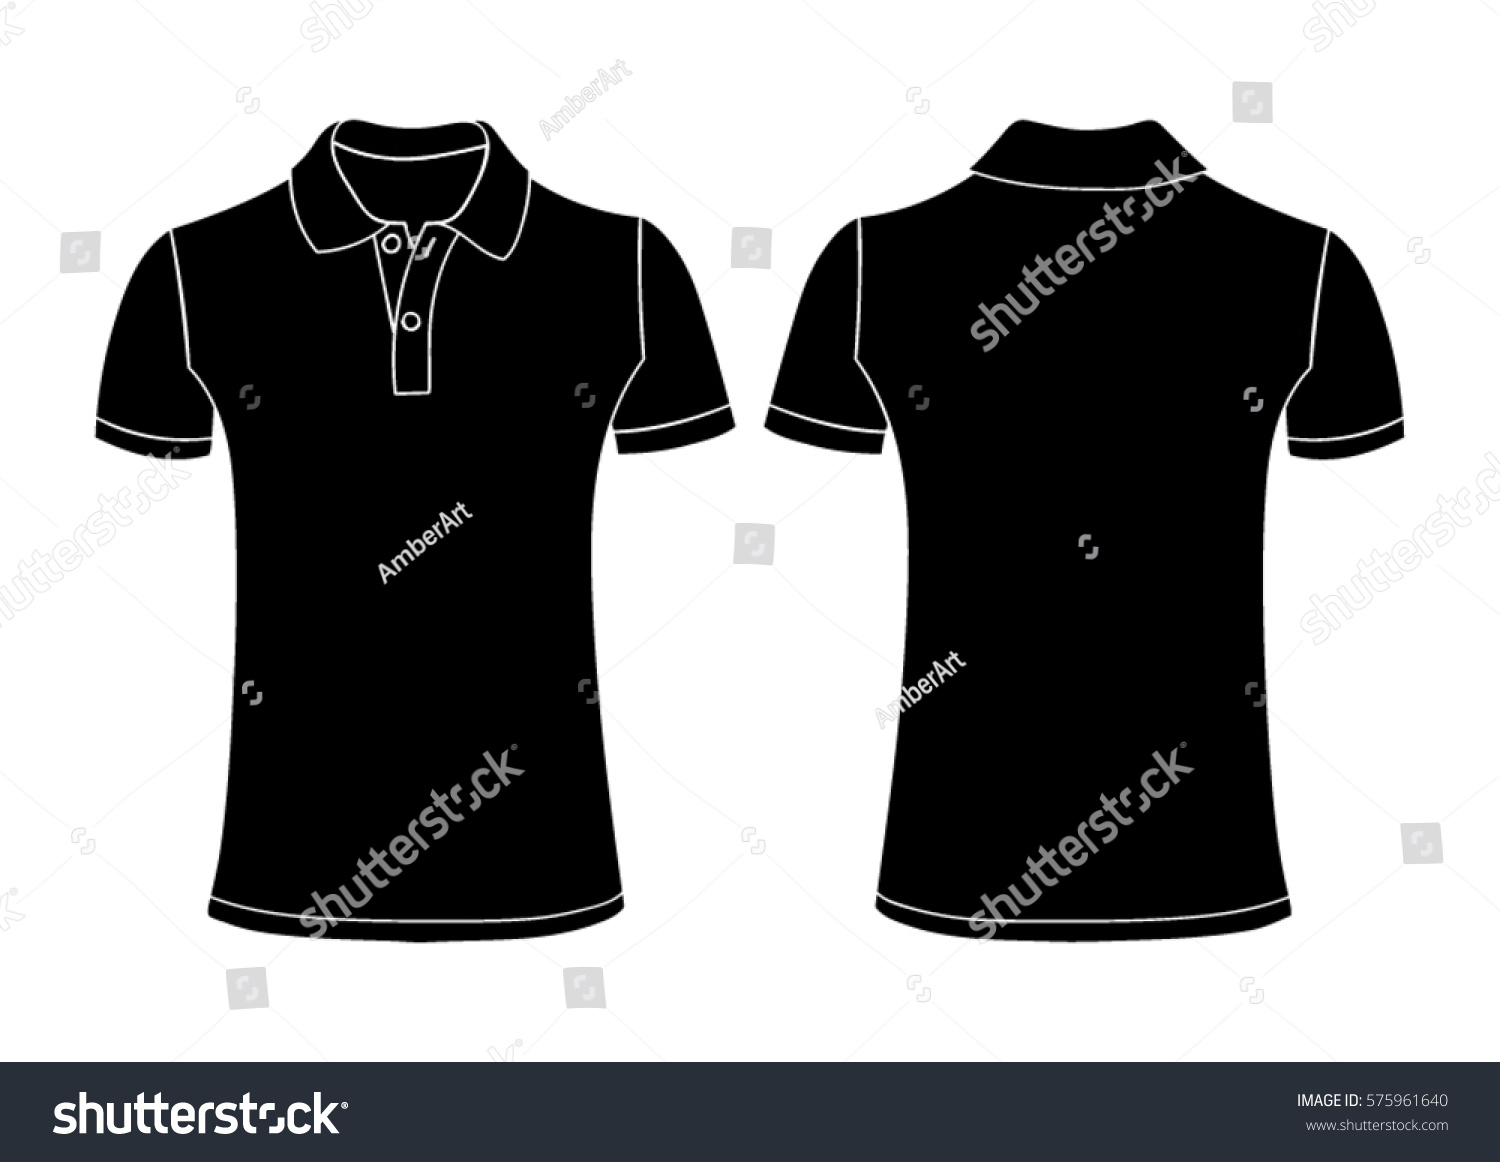 black t shirt vector - photo #24